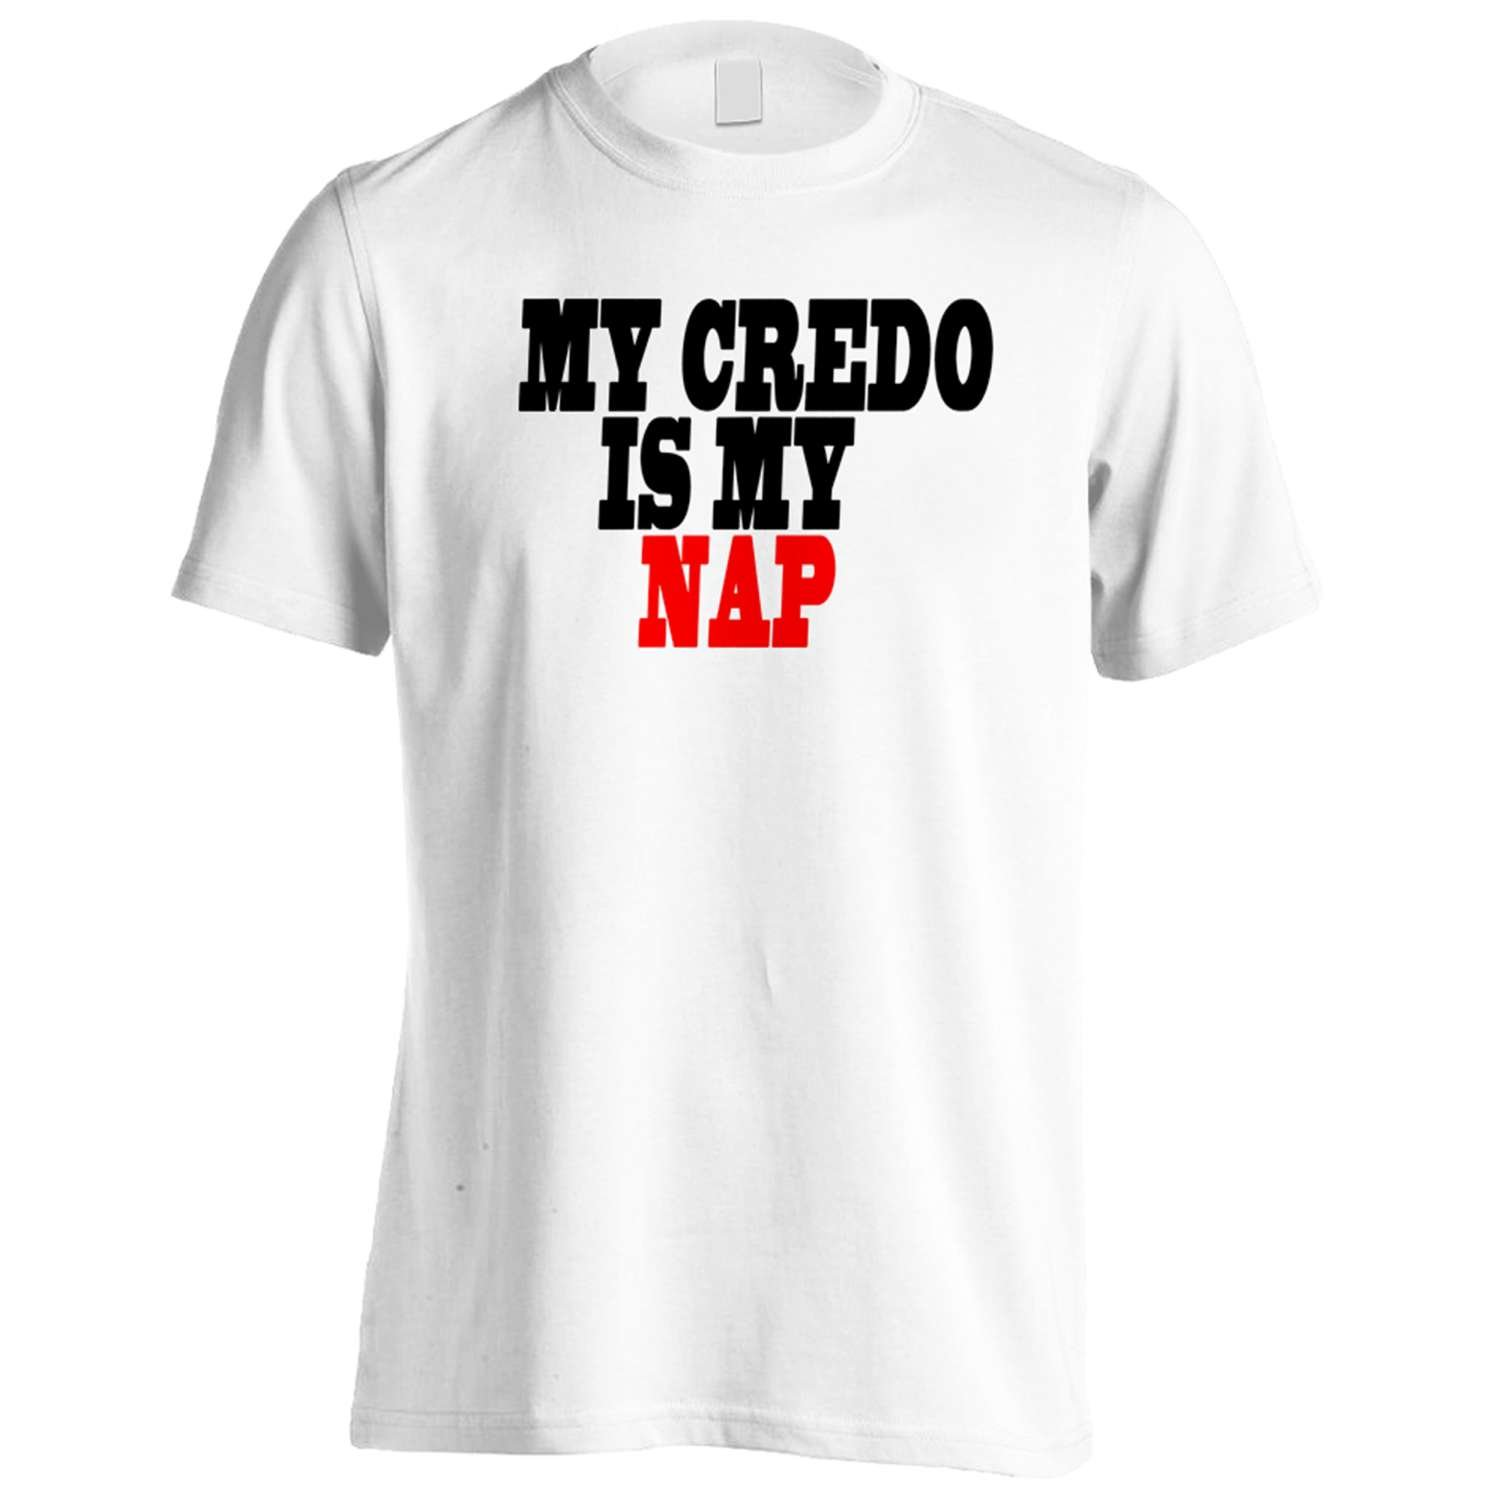 MY CREDO IS MY NAP Funny Novelty New Men's T-Shirt Tee f73m